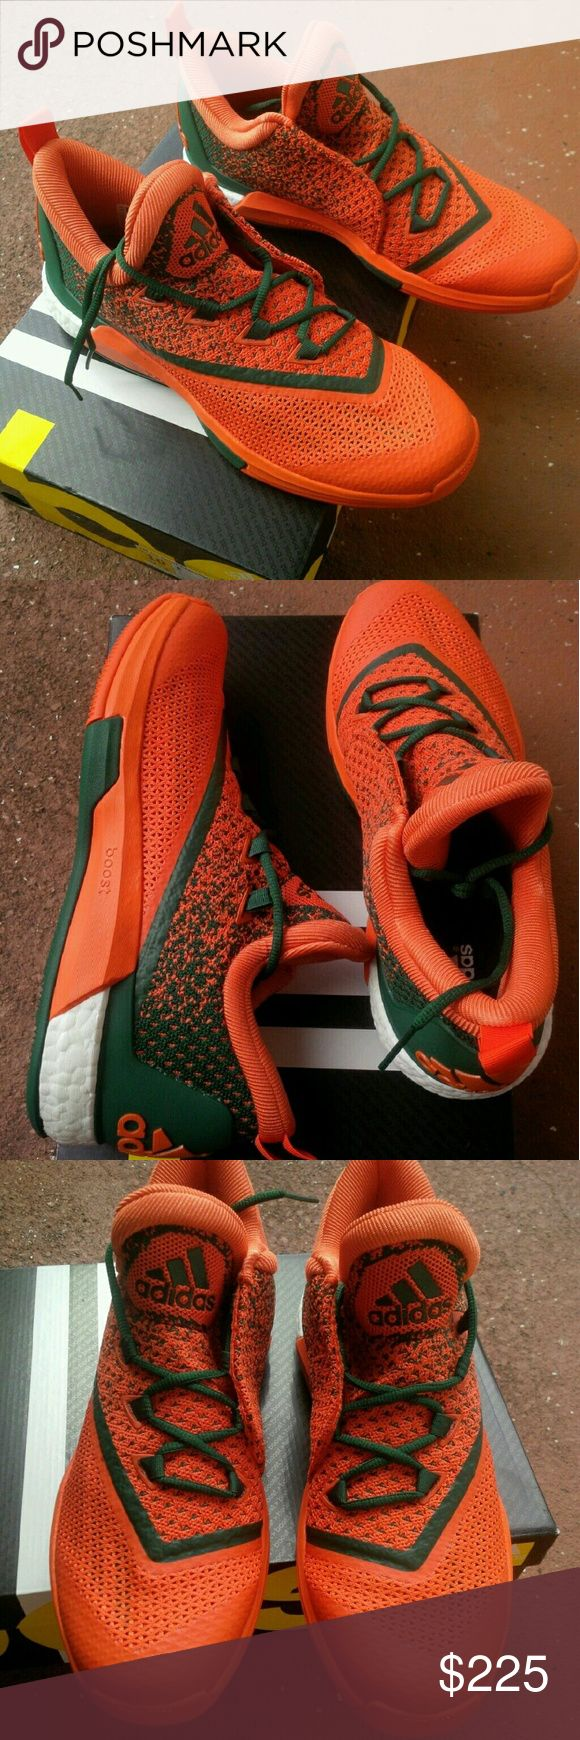 Adidas Boost Crazylight PE Miami Hurrricanes 10.5 New with box adidas boost crazylight player exclusive sample university of Miami hurricanes basketball sneakers. Size 10.5 Adidas Shoes Sneakers